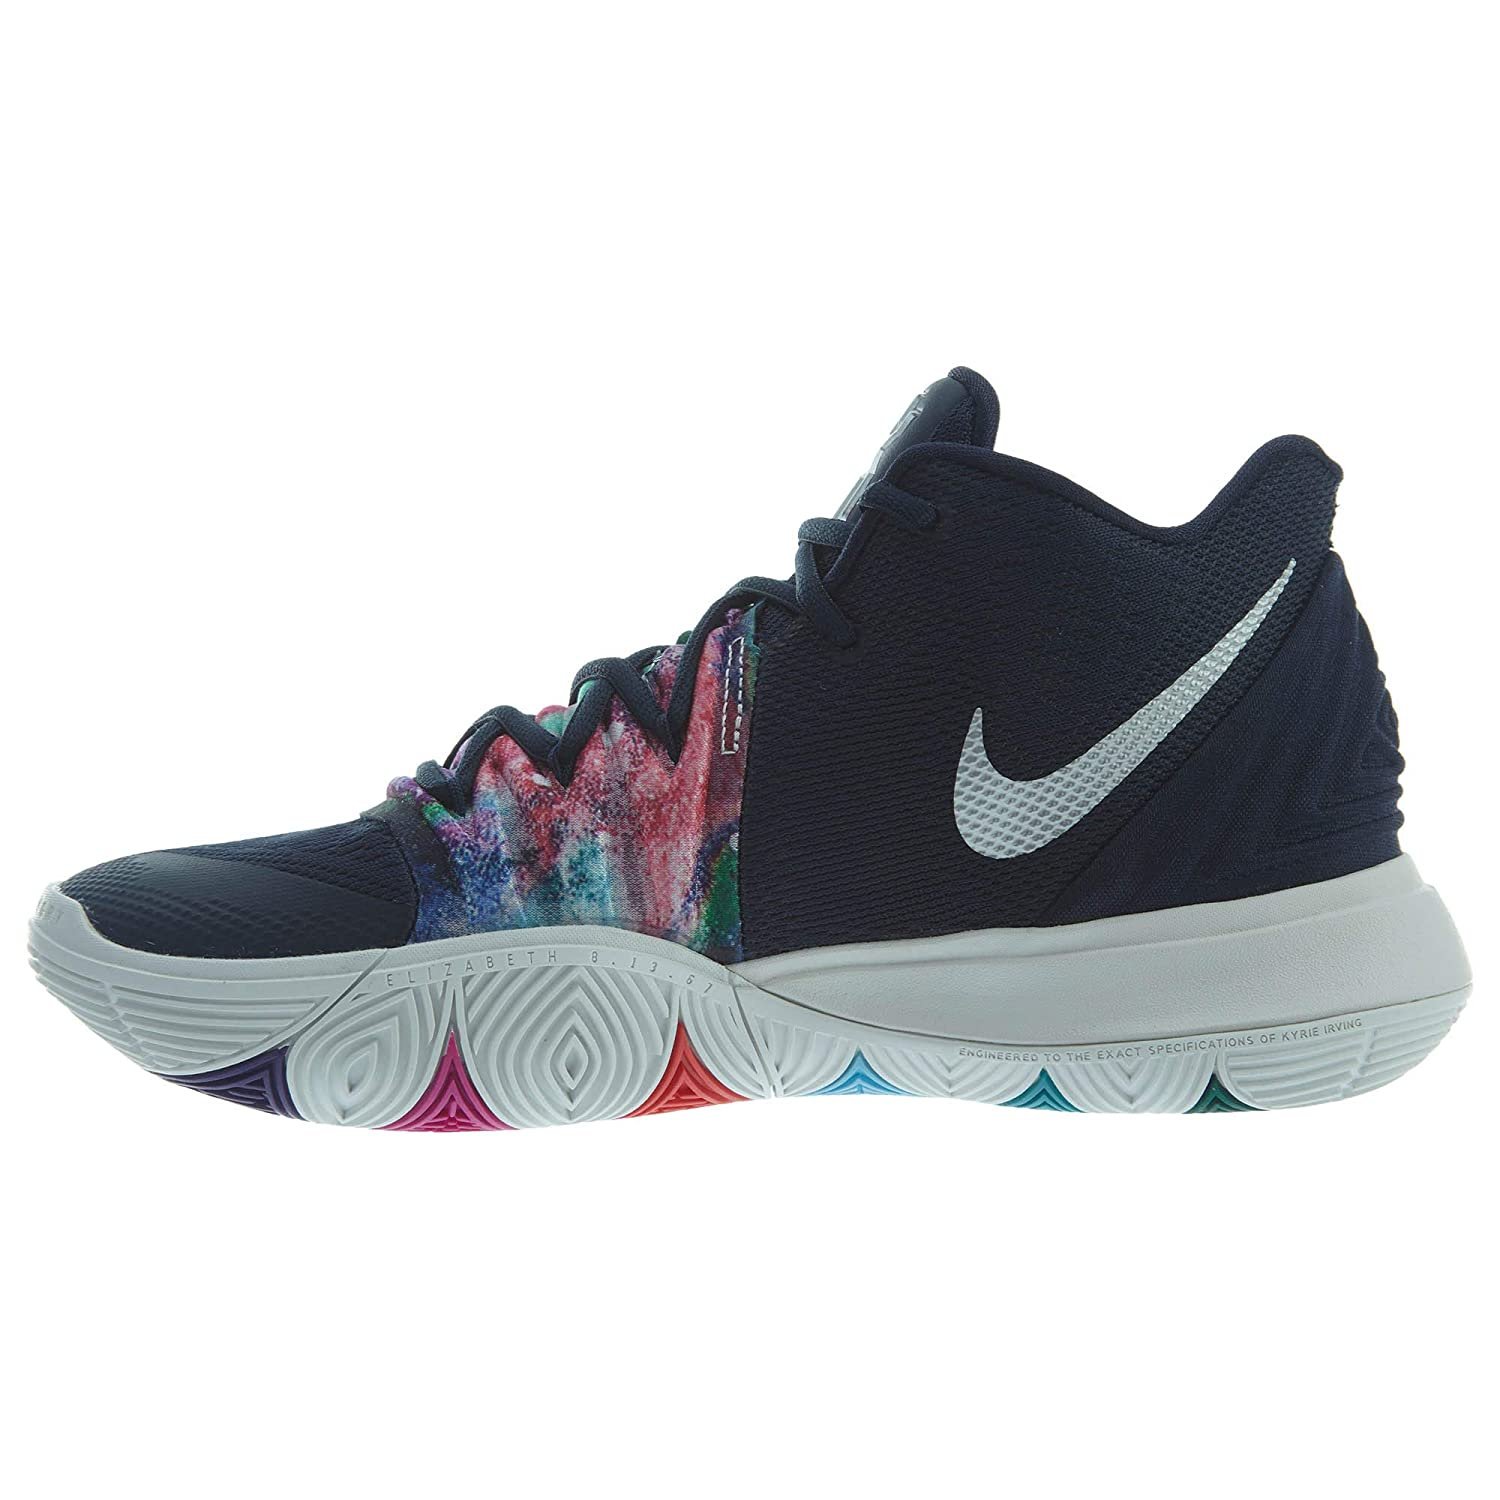 best service 7ef1f 39ff9 Amazon.com   Nike Men s Kyrie 5 Basketball Shoes   Basketball